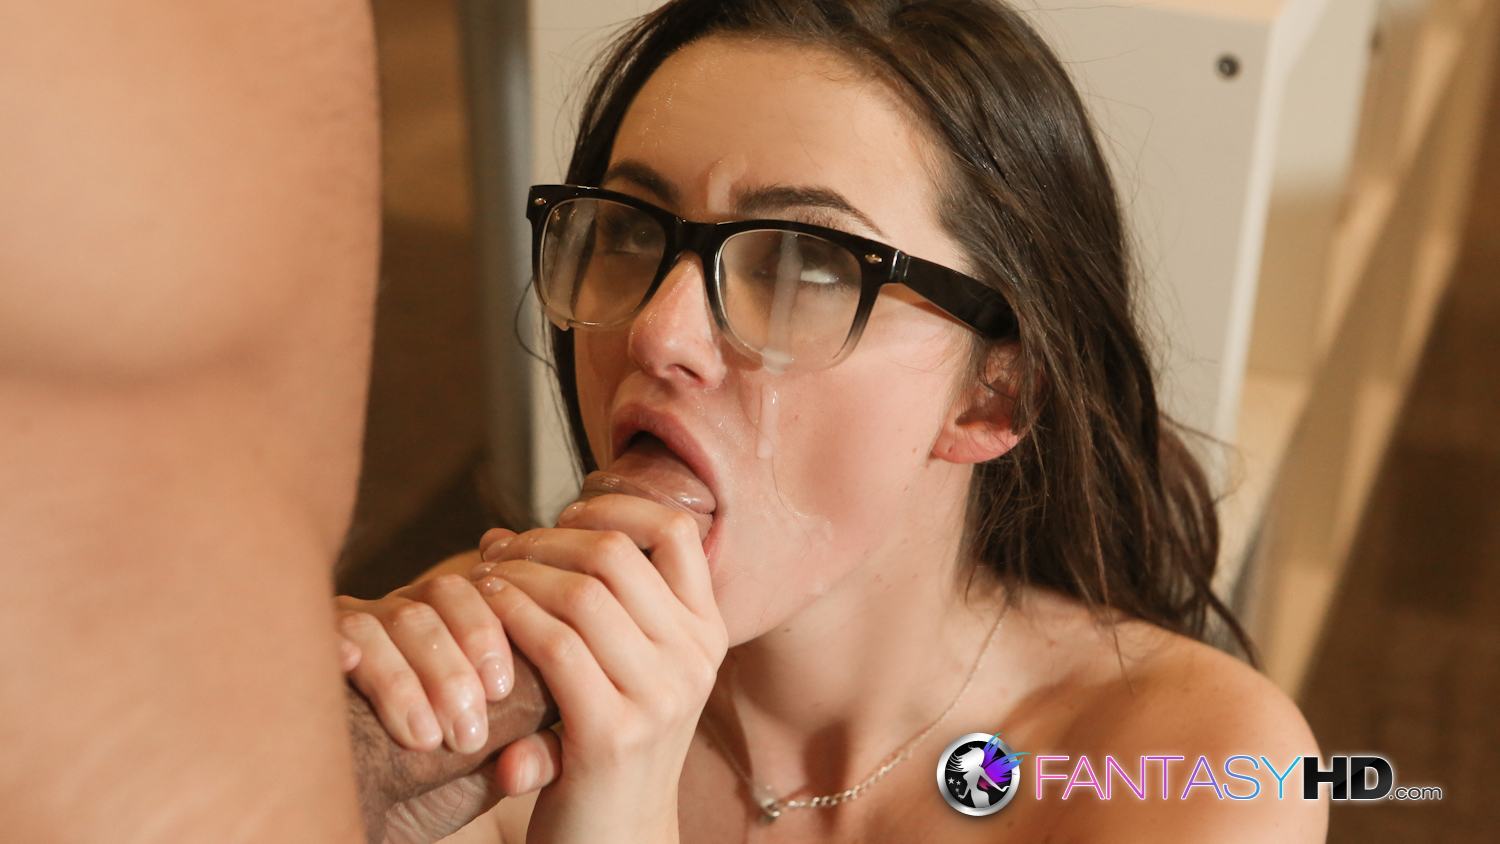 Fantasy Hd Lily Carter Porn - Lily Carter. Click Here For More FREE HD Samples